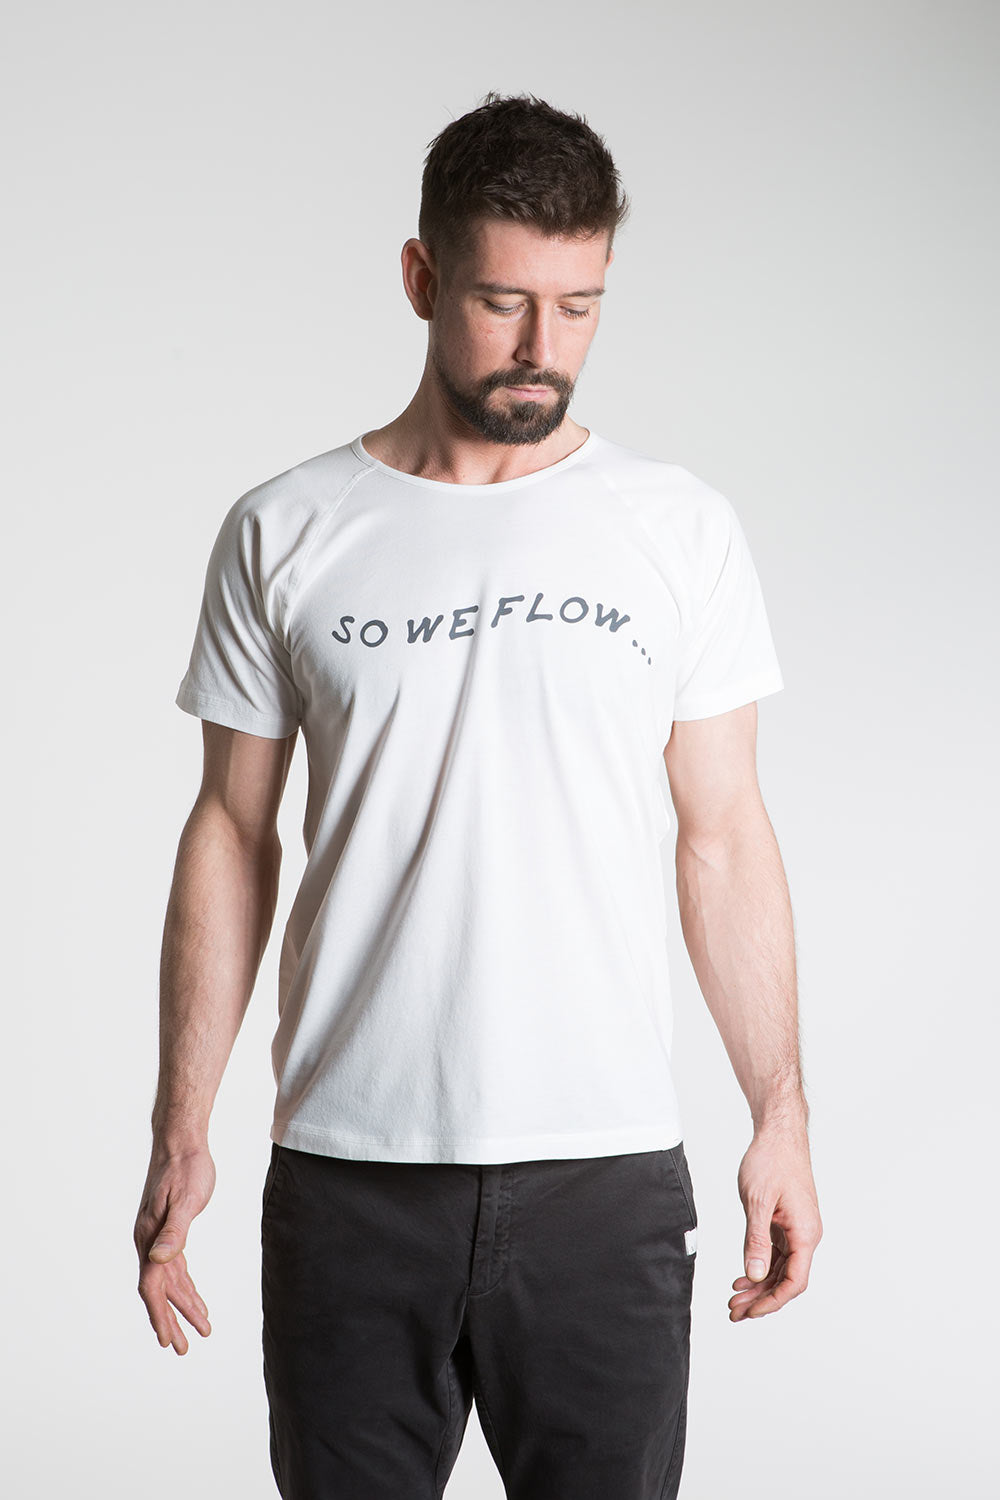 So We Flow... T-Shirt - Natural by So We Flow...